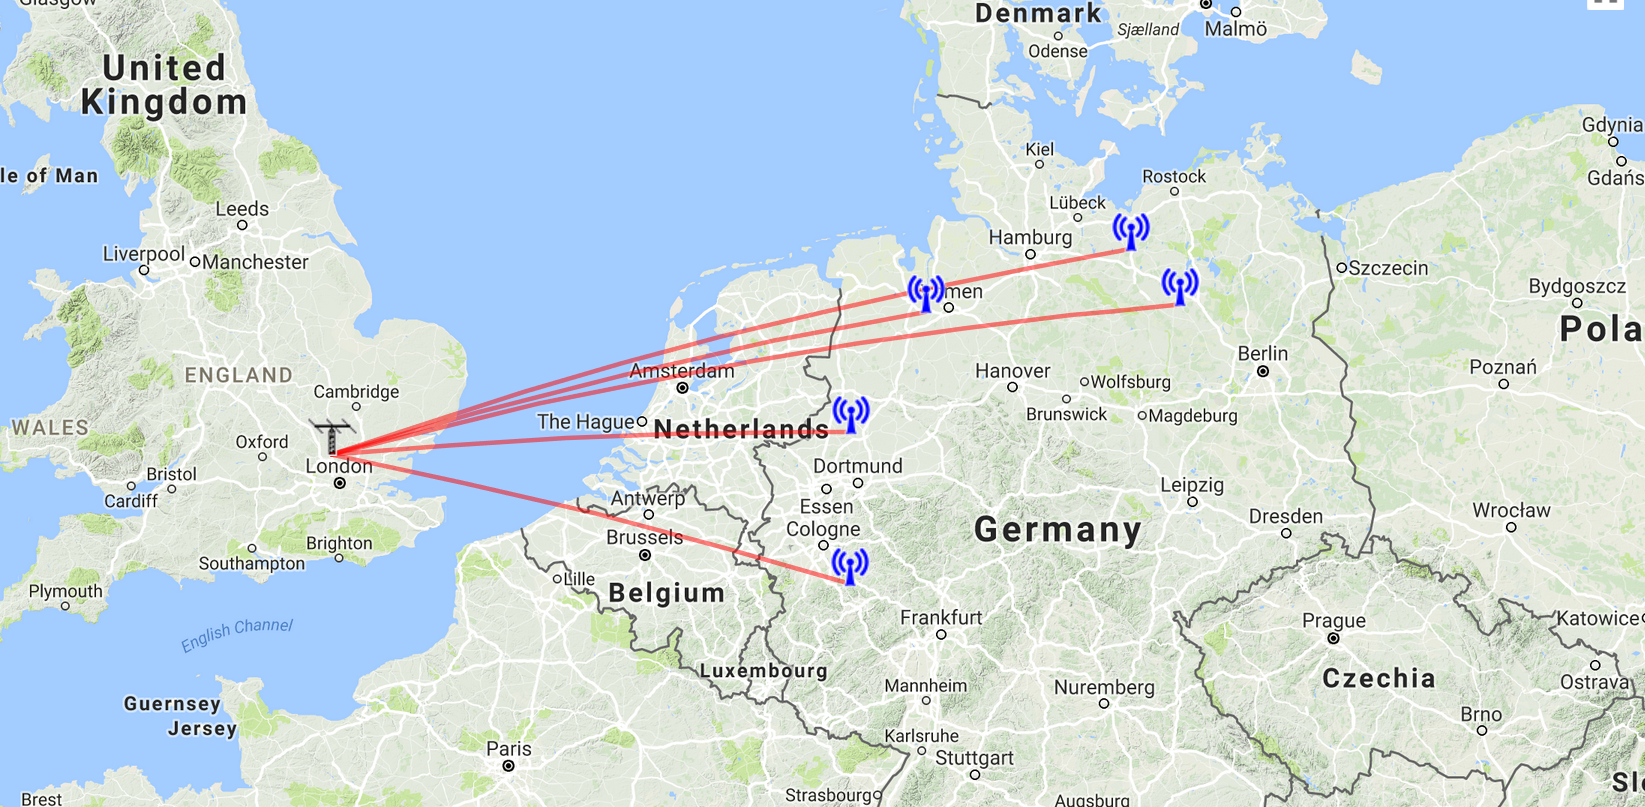 German signals received at night